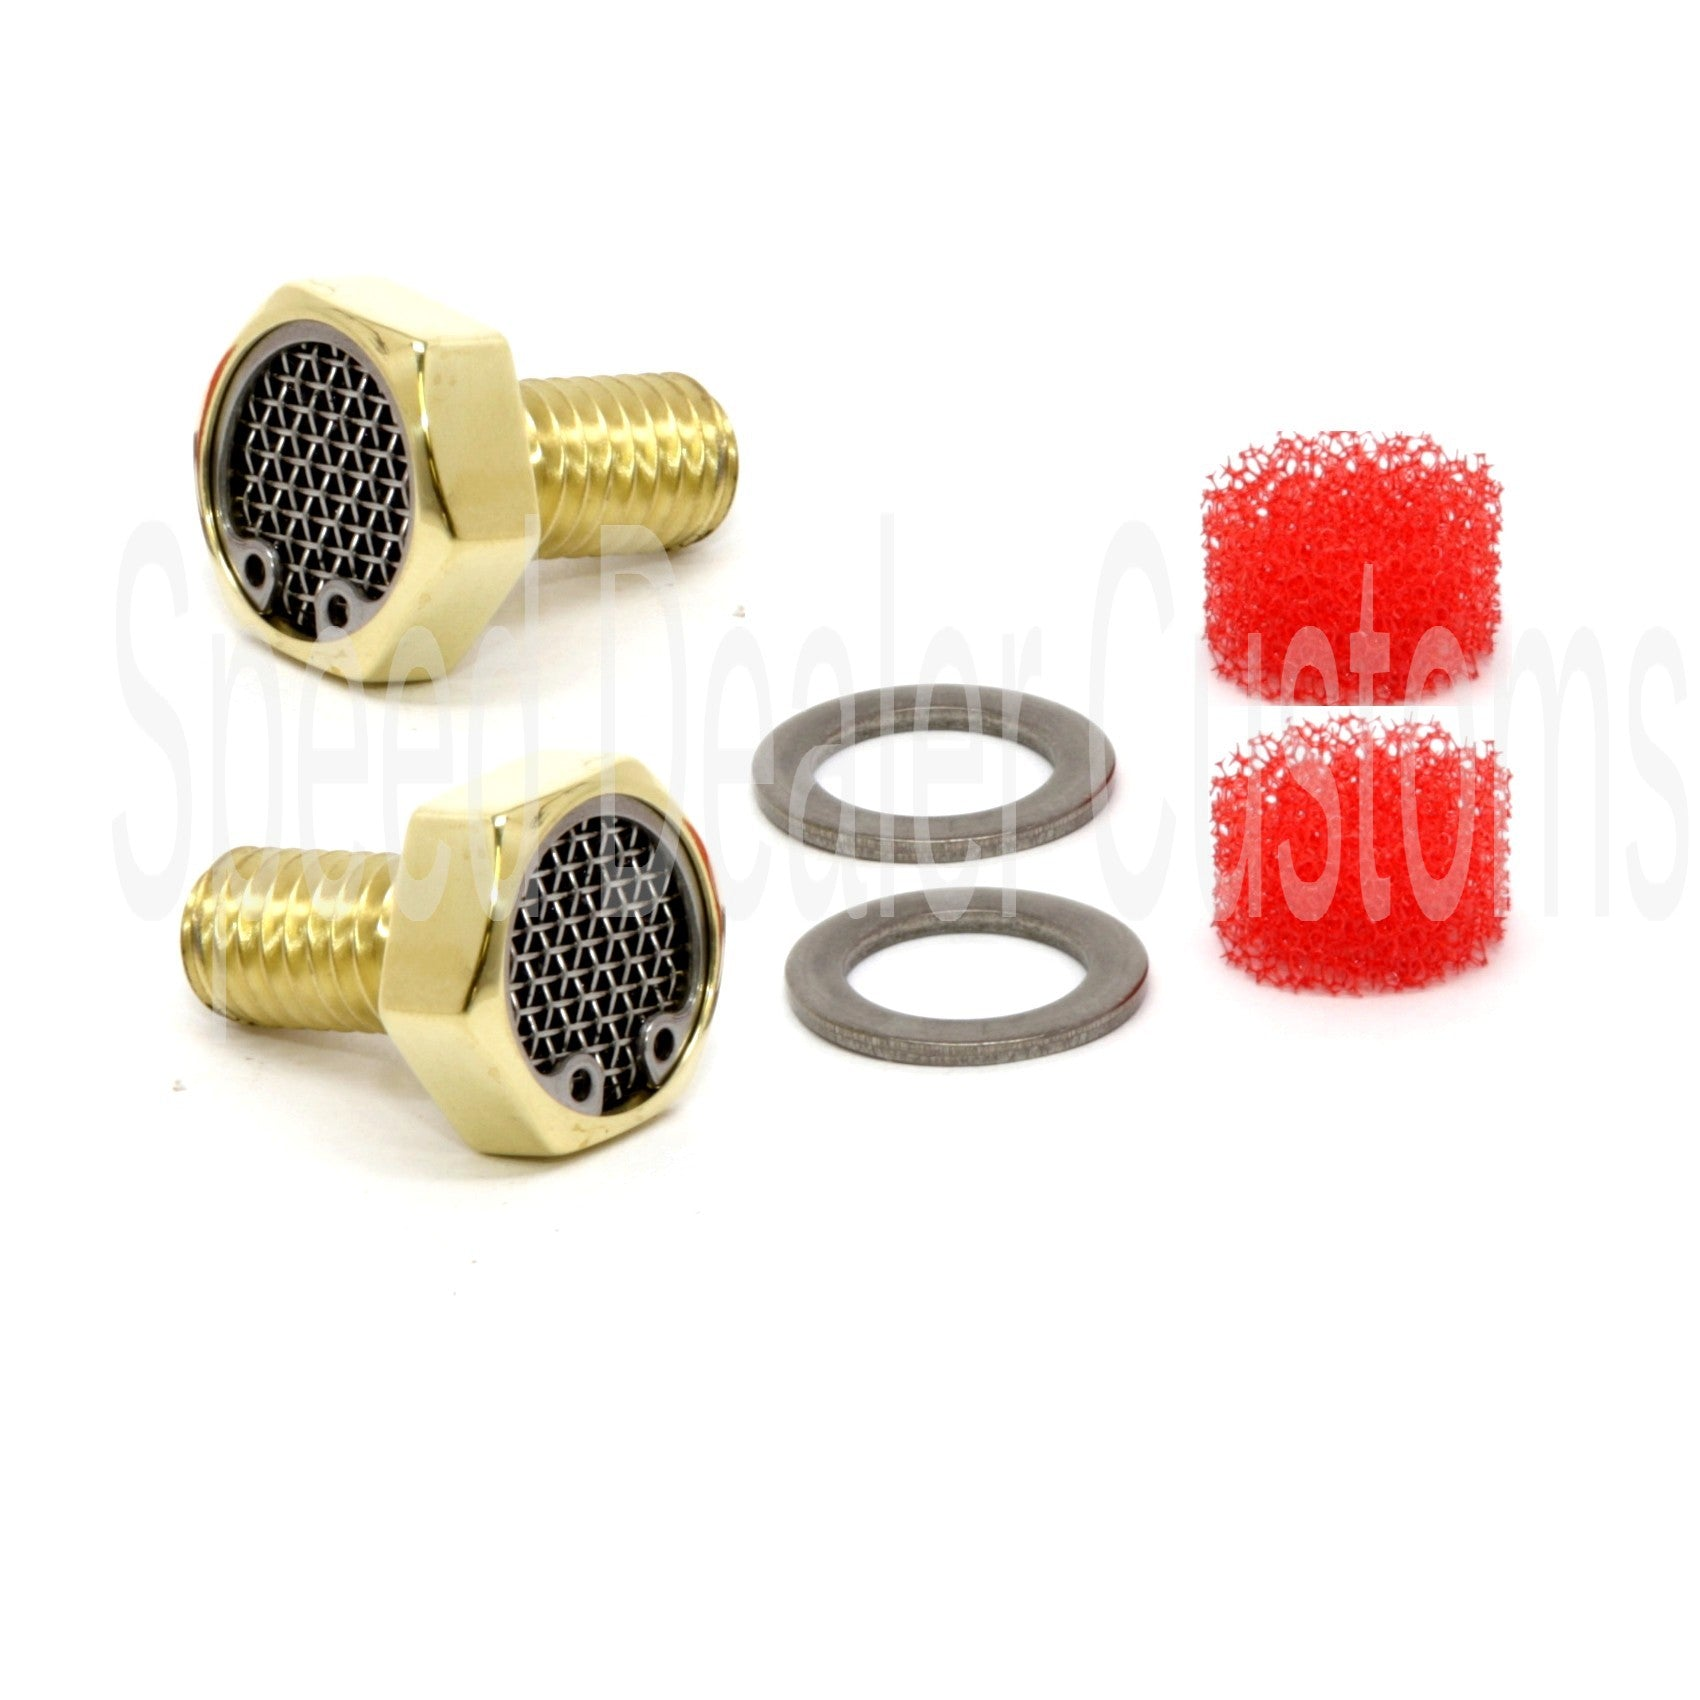 Twin Cam Breather Bolts Kit Knurled Brass for Harley Softail Dyna Touring CVO